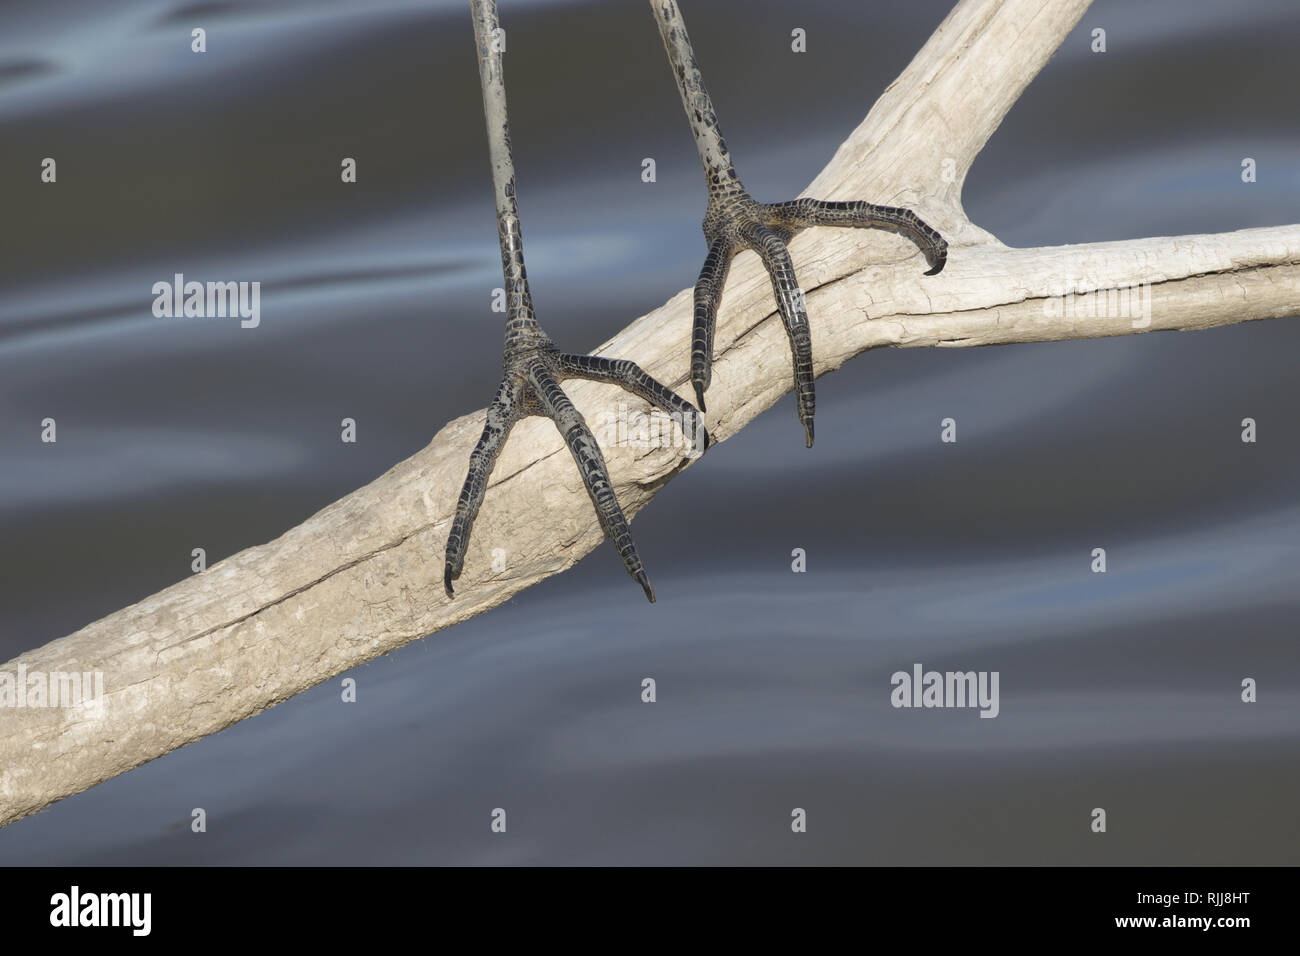 Suggestive background is close up of just the sharp claws and dark feet of Great Blue Heron. - Stock Image